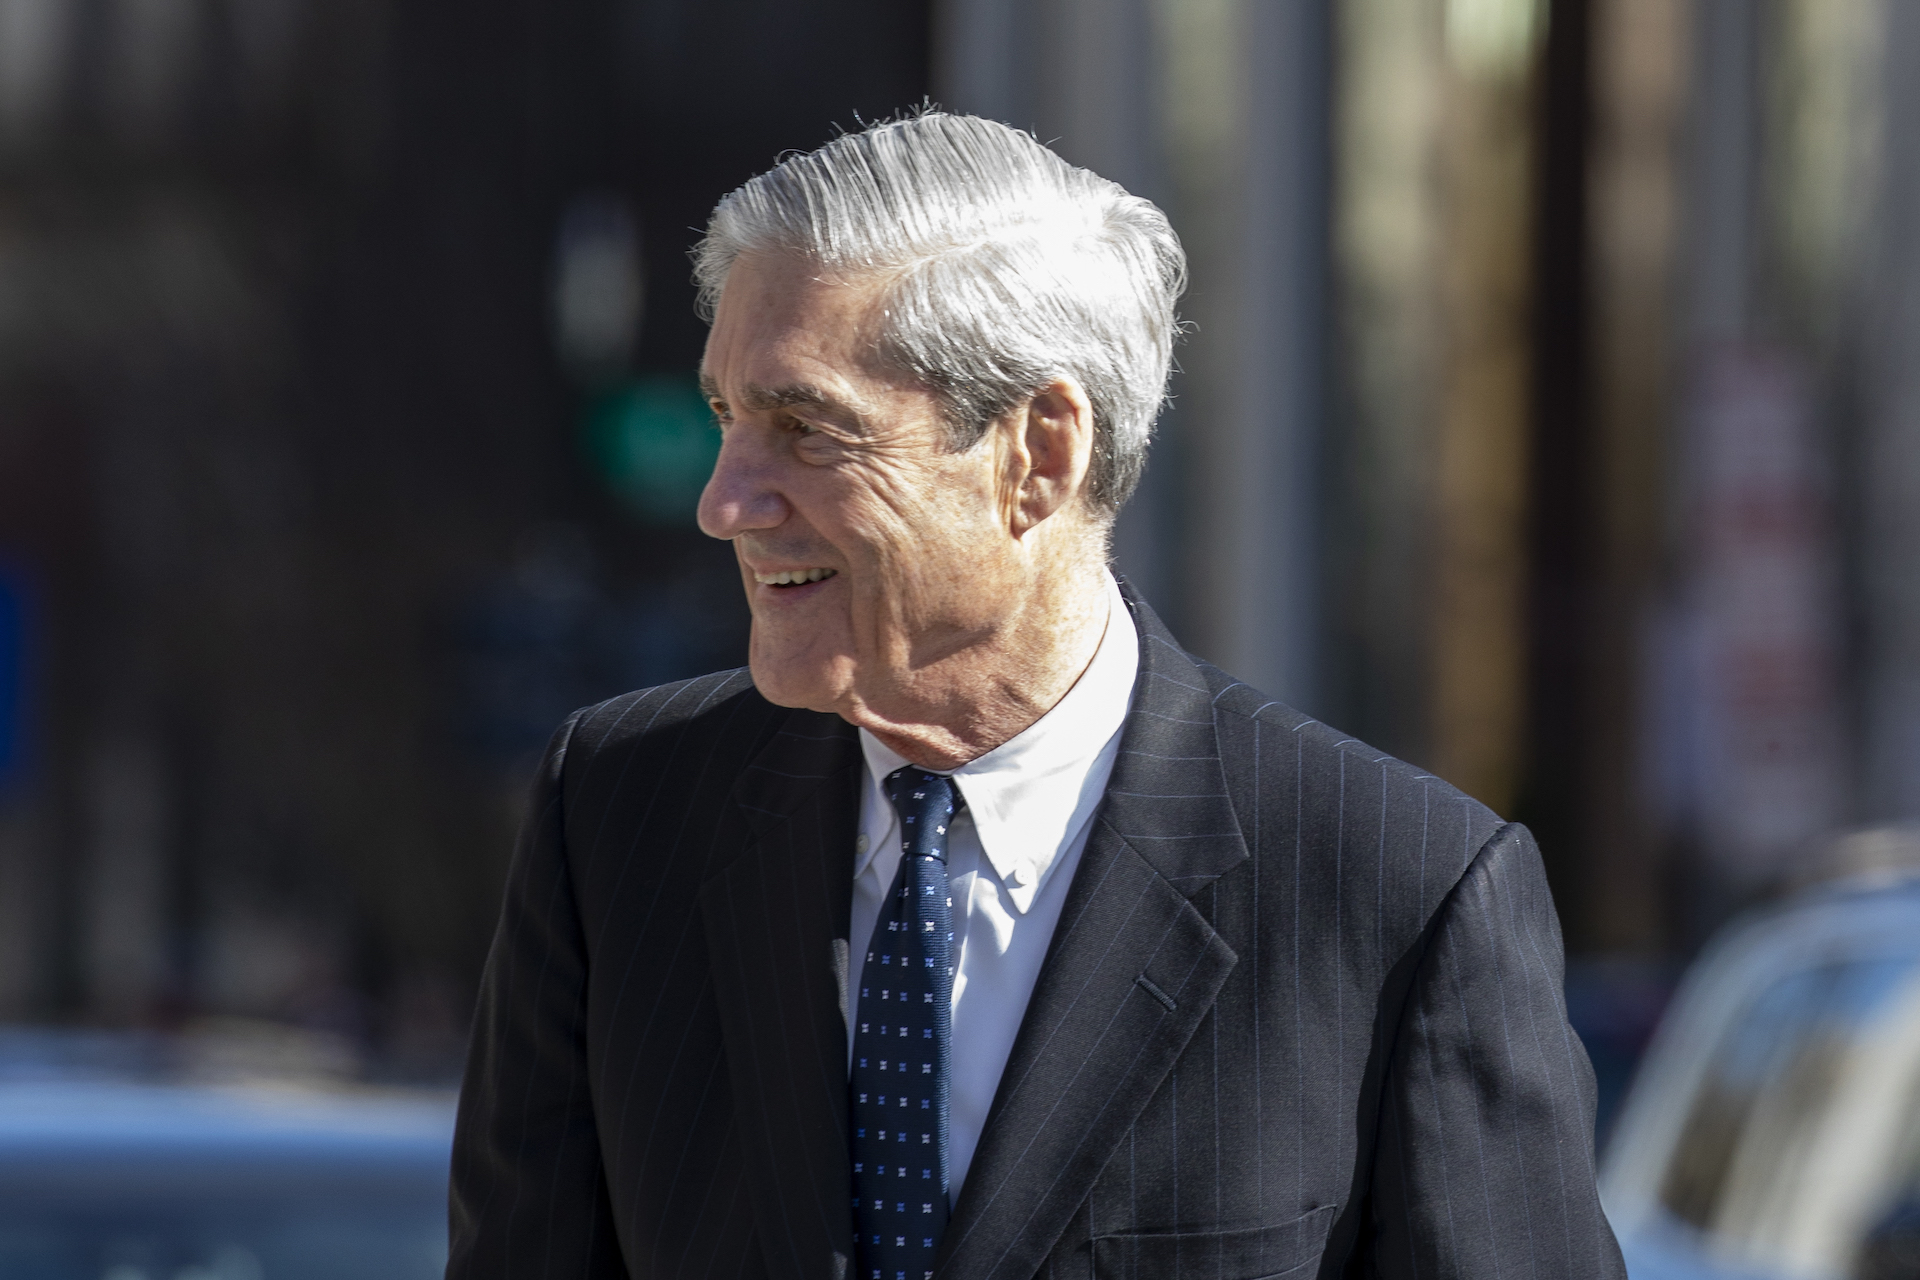 vice.com - VICE News - Congress has received a 'brief letter' on the Mueller report's findings - VICE News